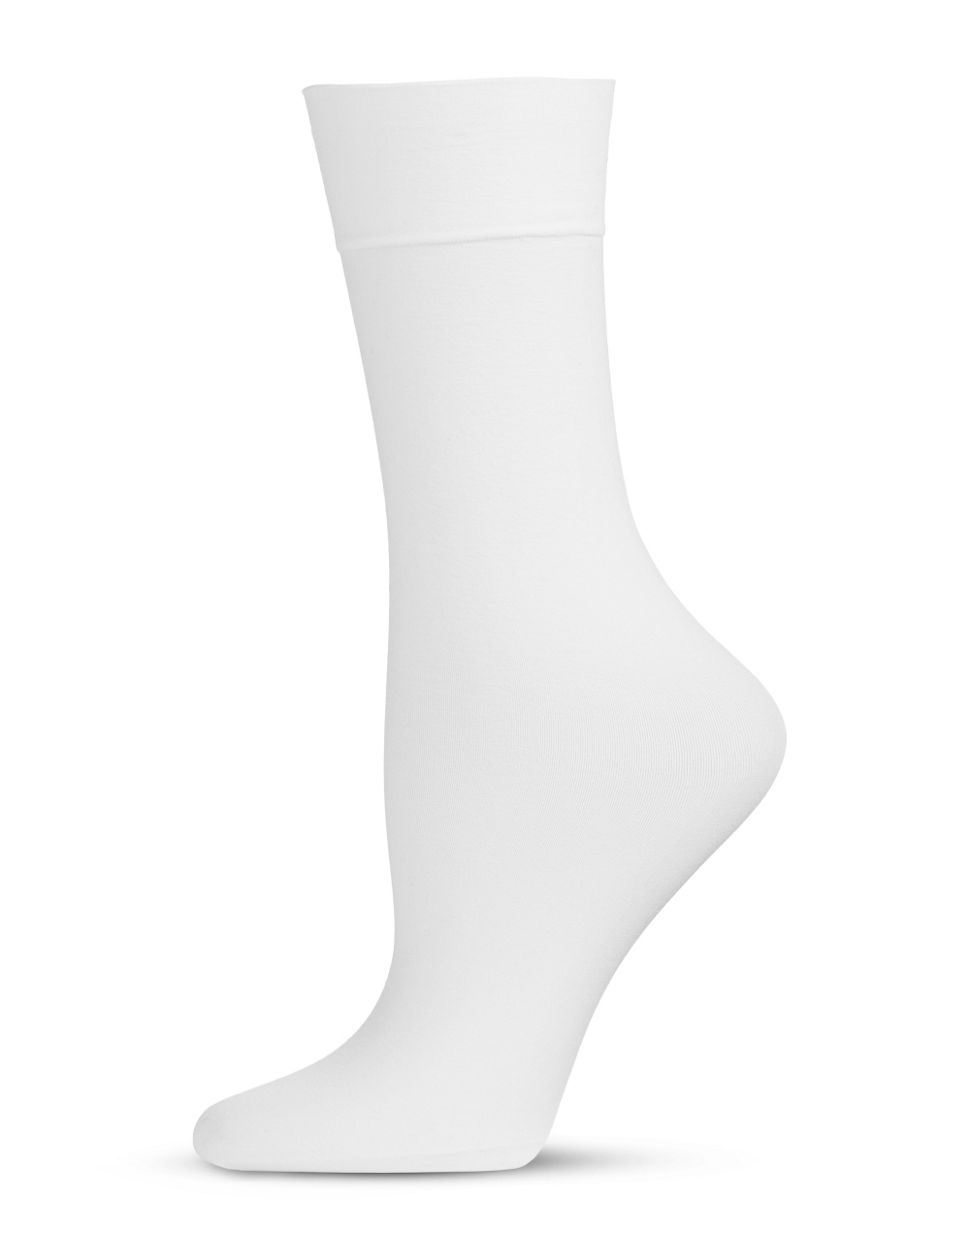 Hue Opaque Knee High white 2